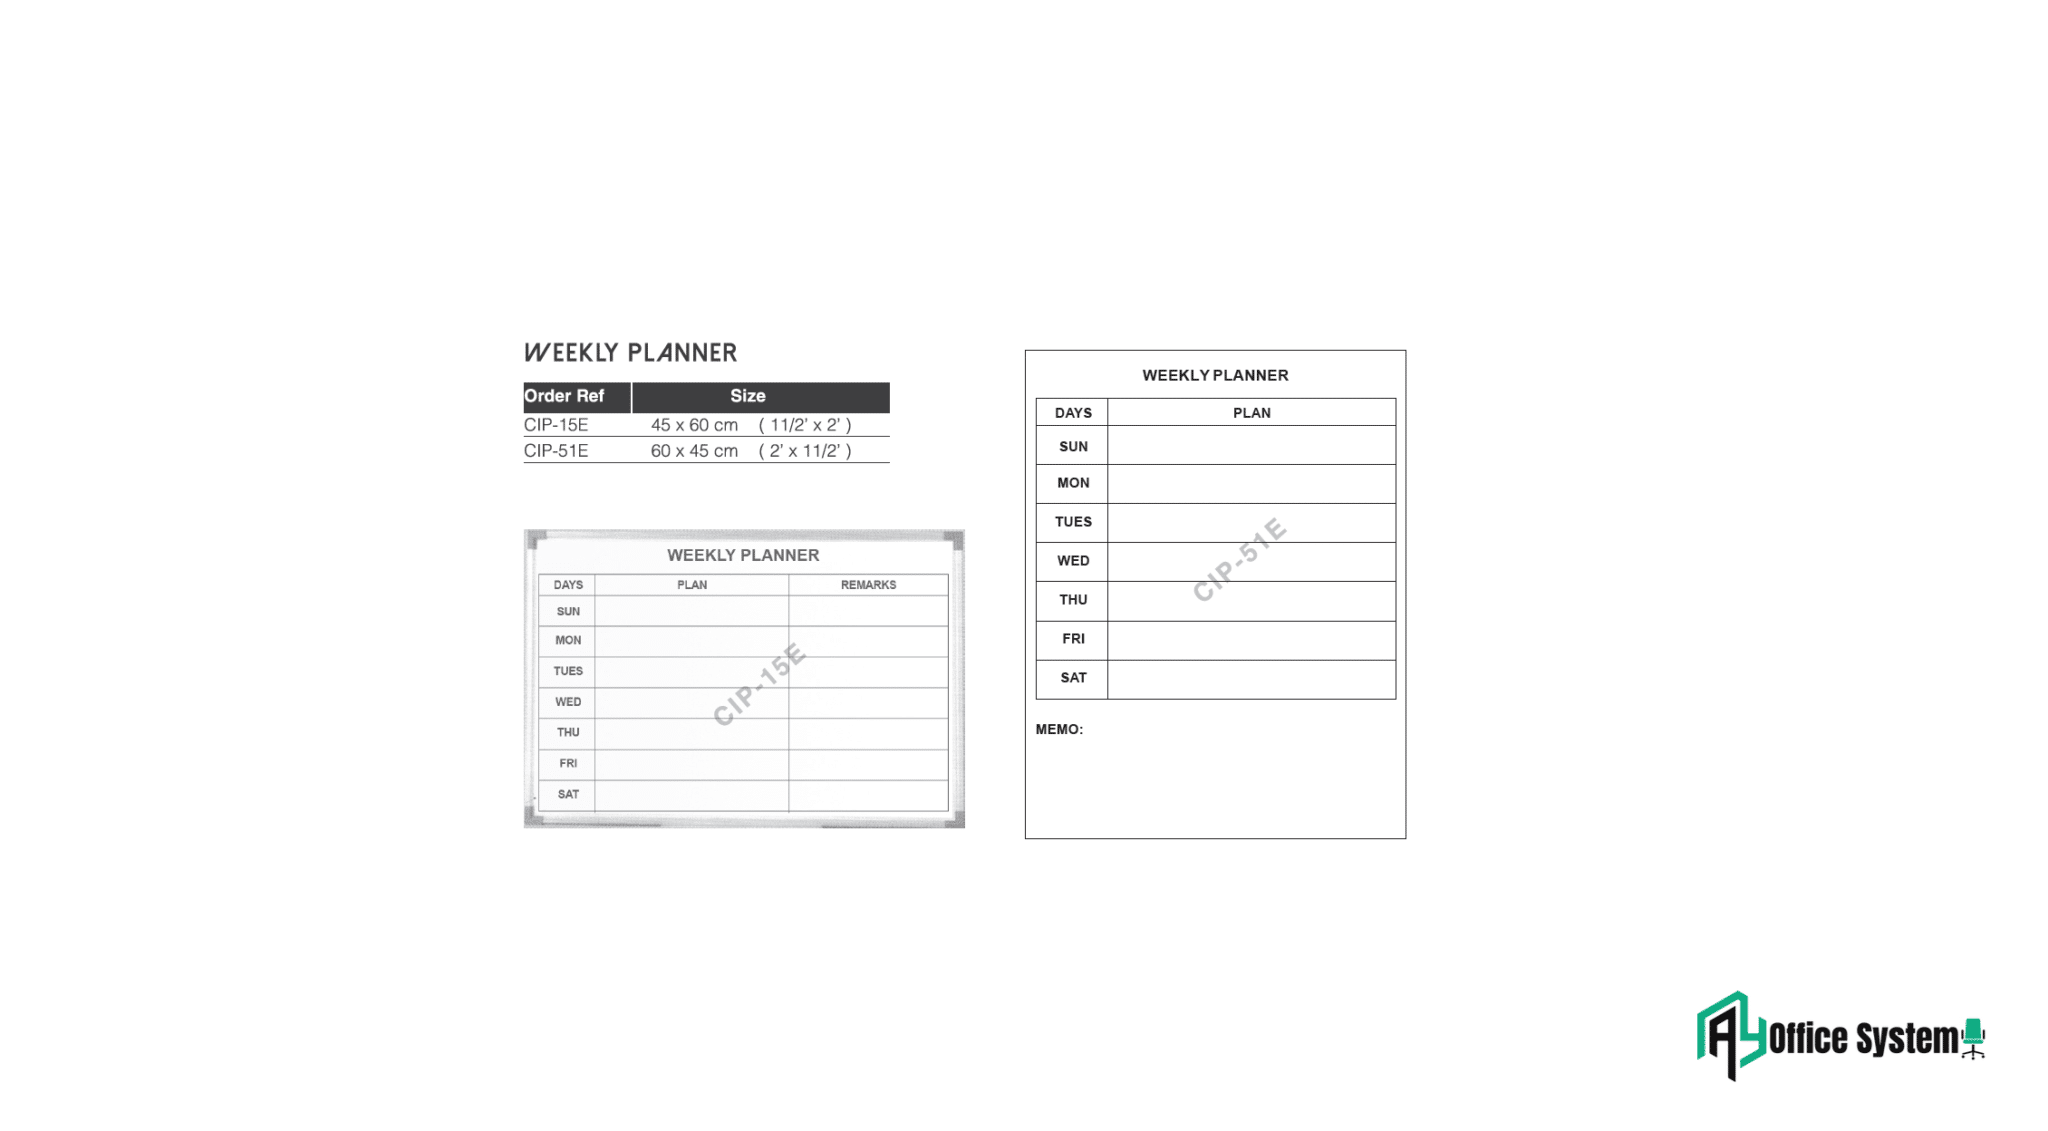 CIPE - Weekly Planner AY Office System